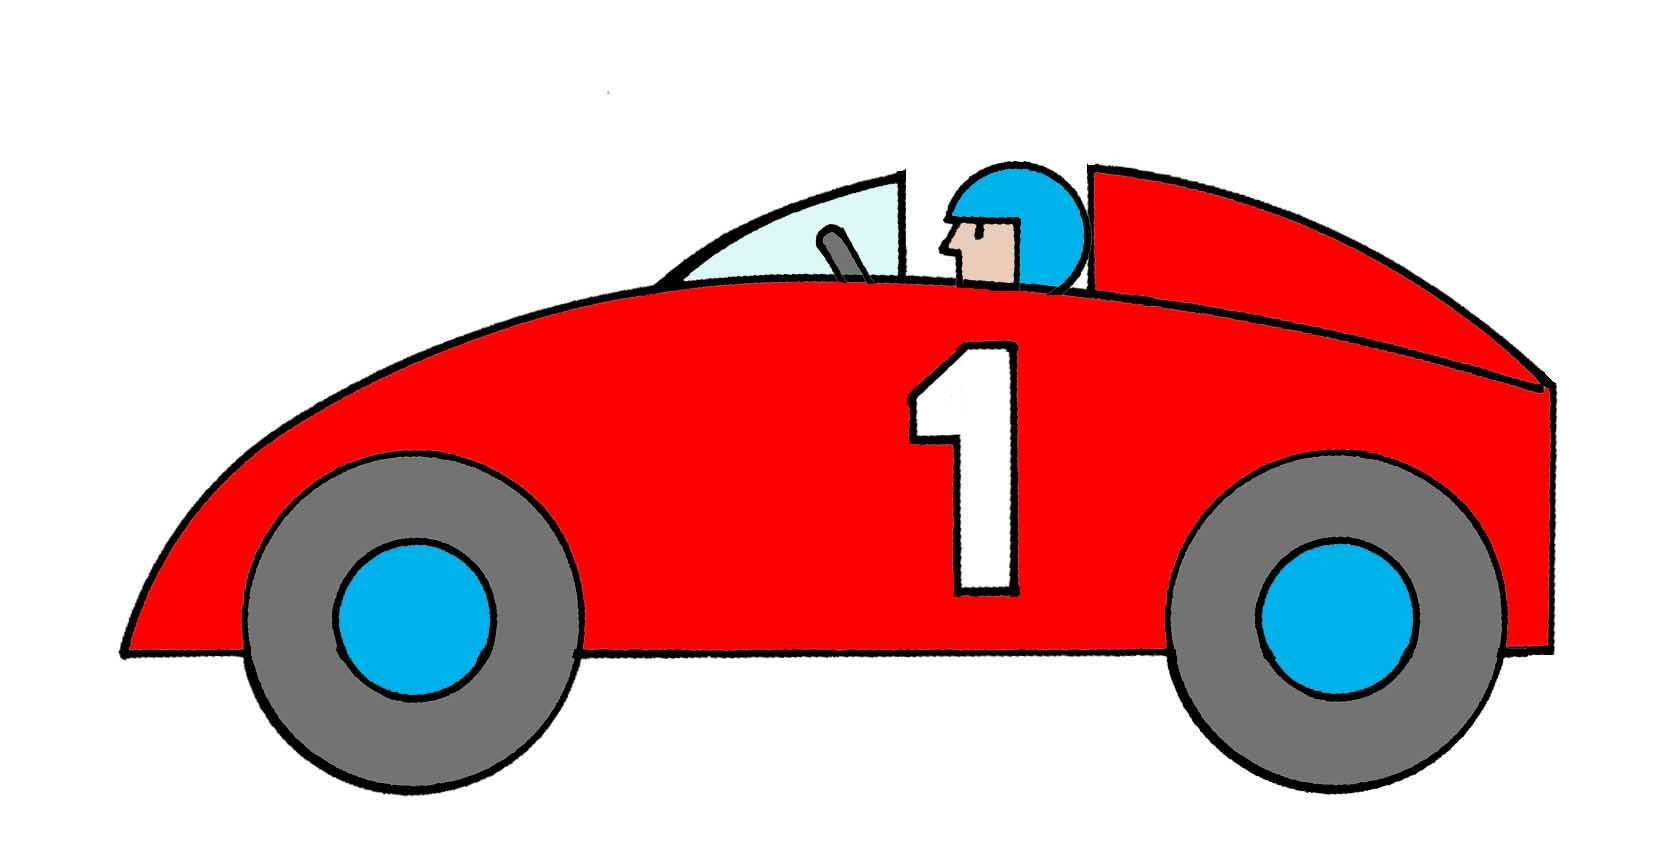 Free car racing clipart royalty free download Animated Race Car Clipart | Free download best Animated Race Car ... royalty free download